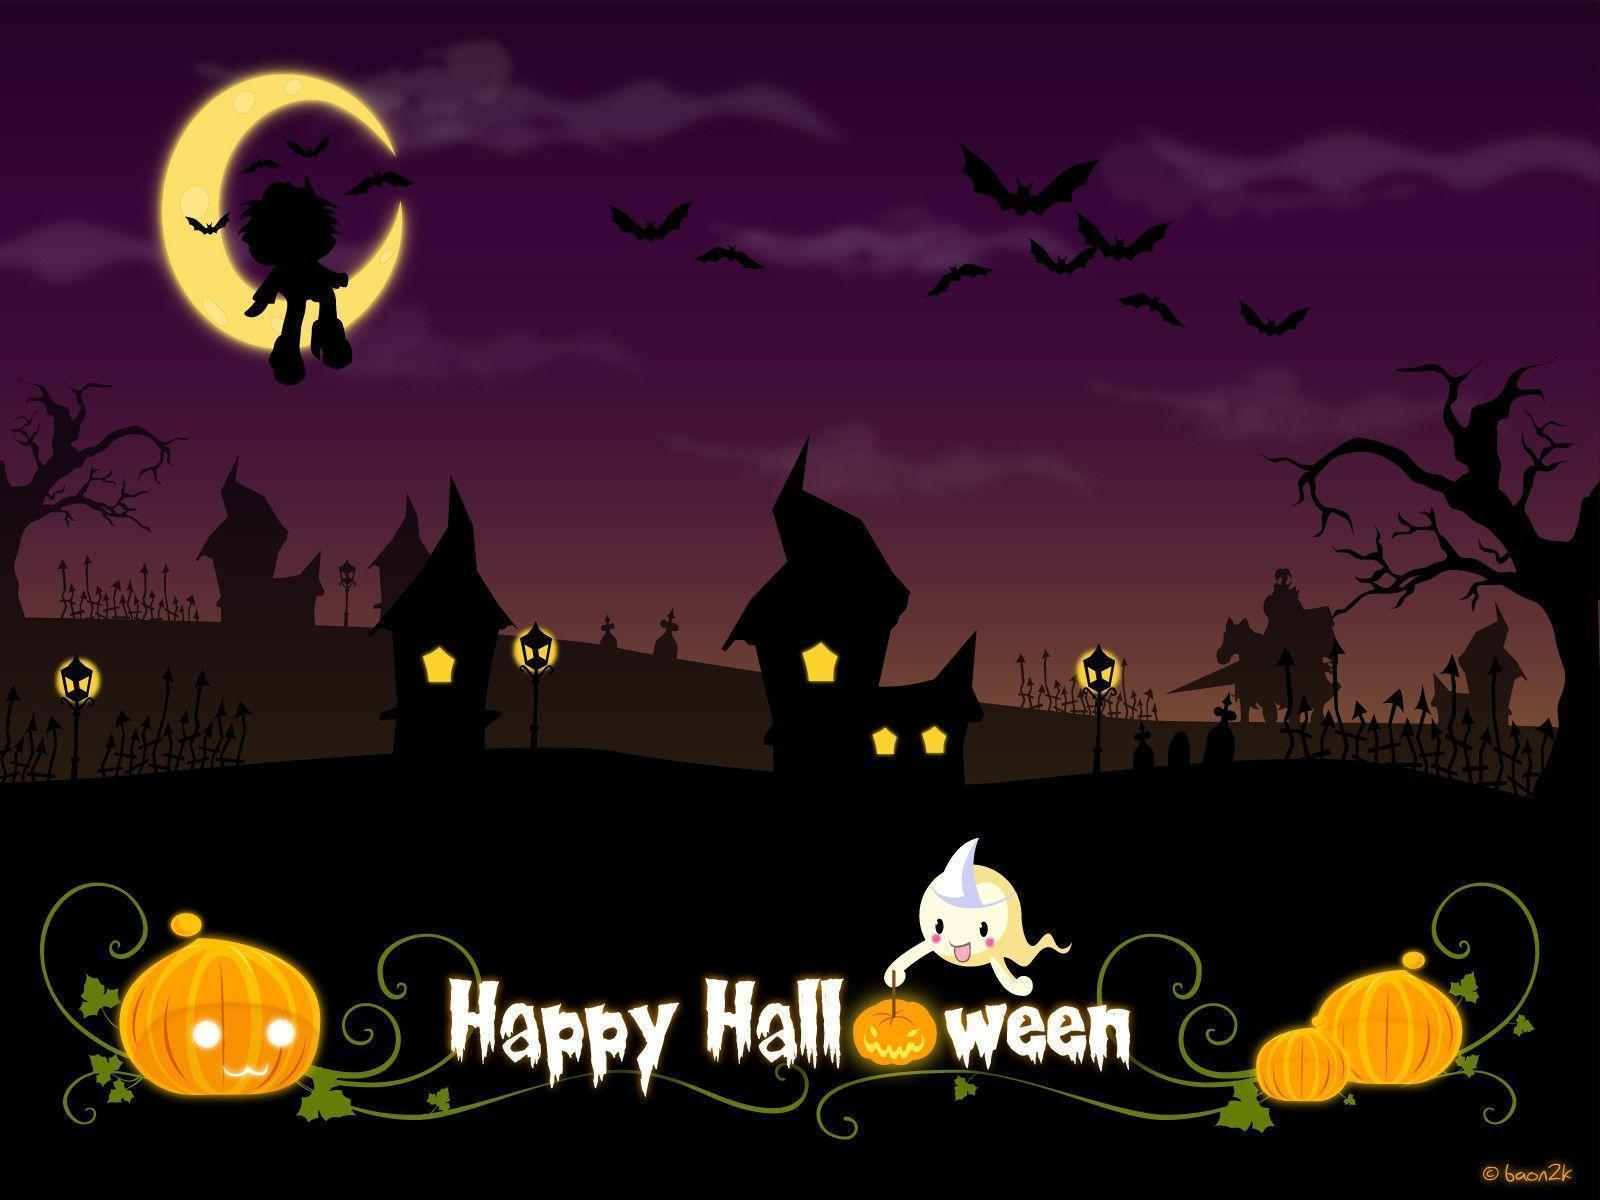 60 cute Halloween wallpapers HQ